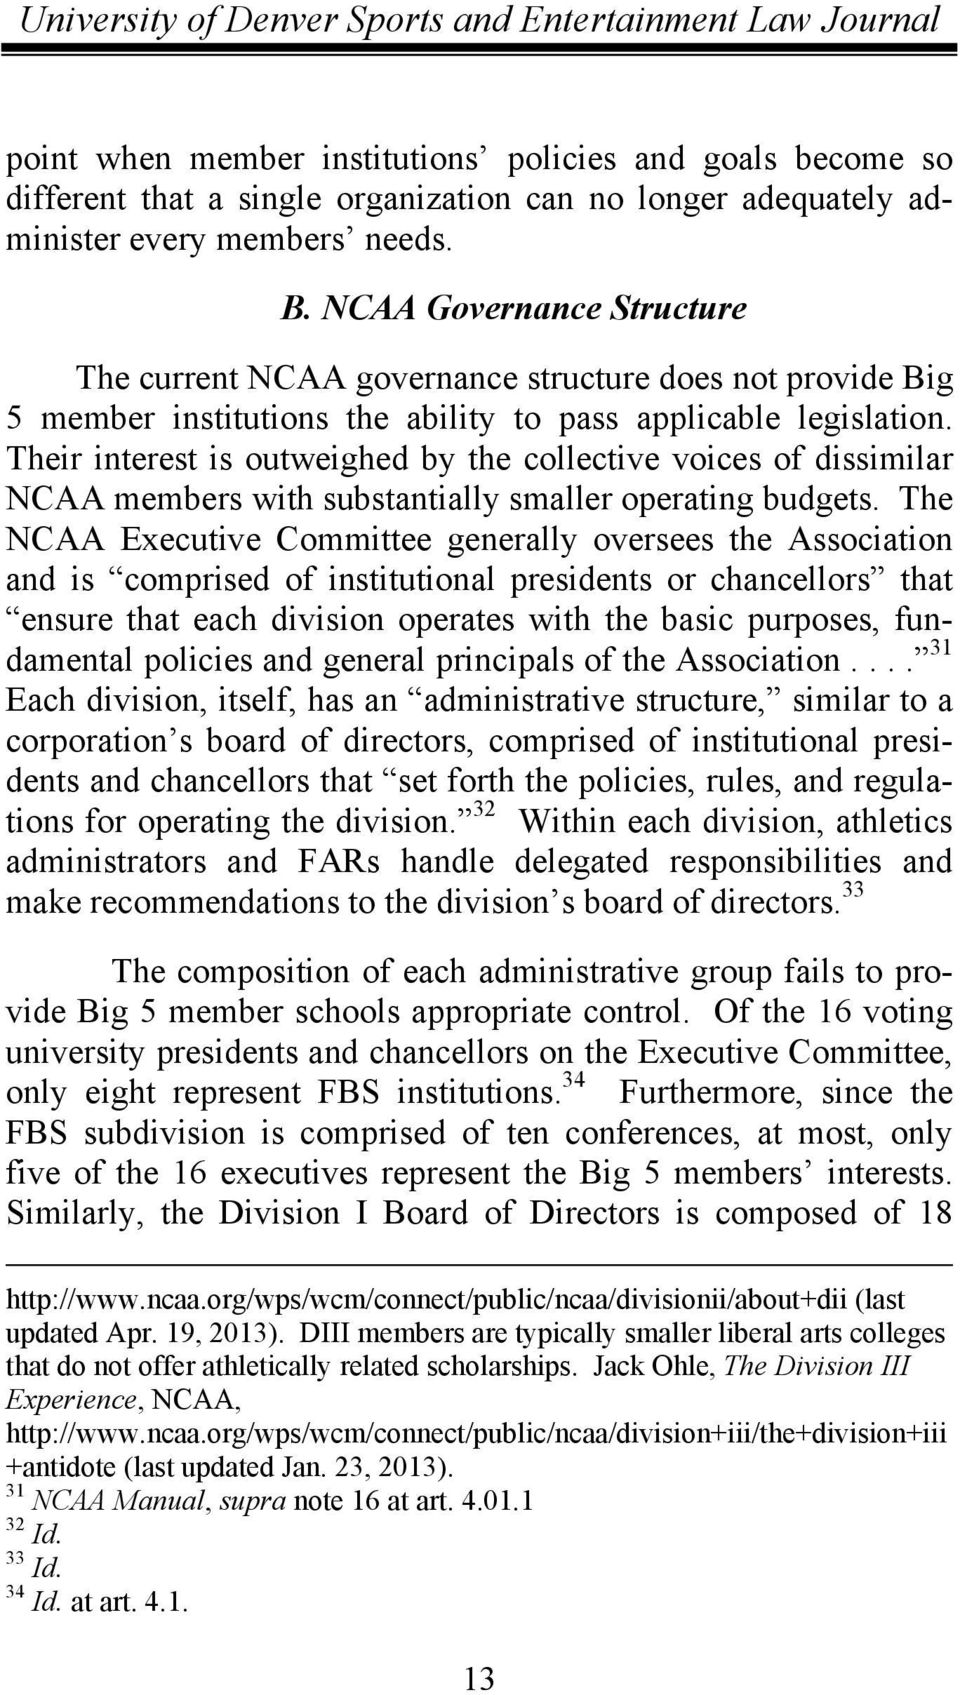 Their interest is outweighed by the collective voices of dissimilar NCAA members with substantially smaller operating budgets.